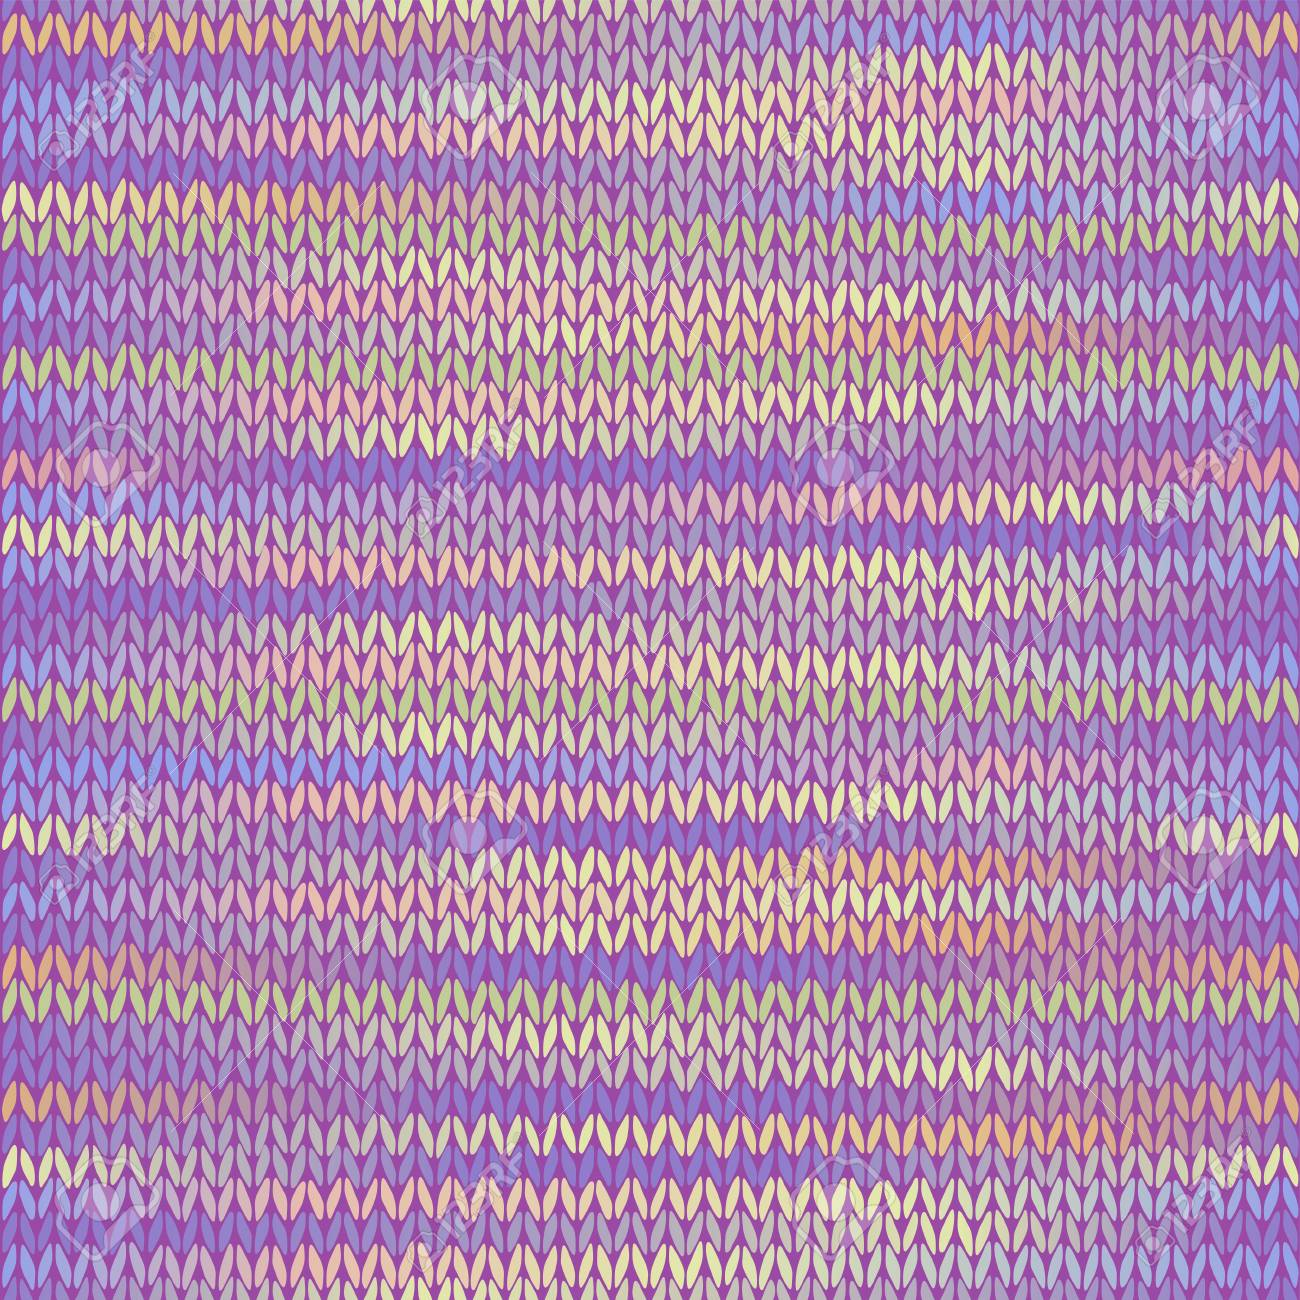 Style Seamless Tricote A Capuche Rose Lilas Couleur Illustration